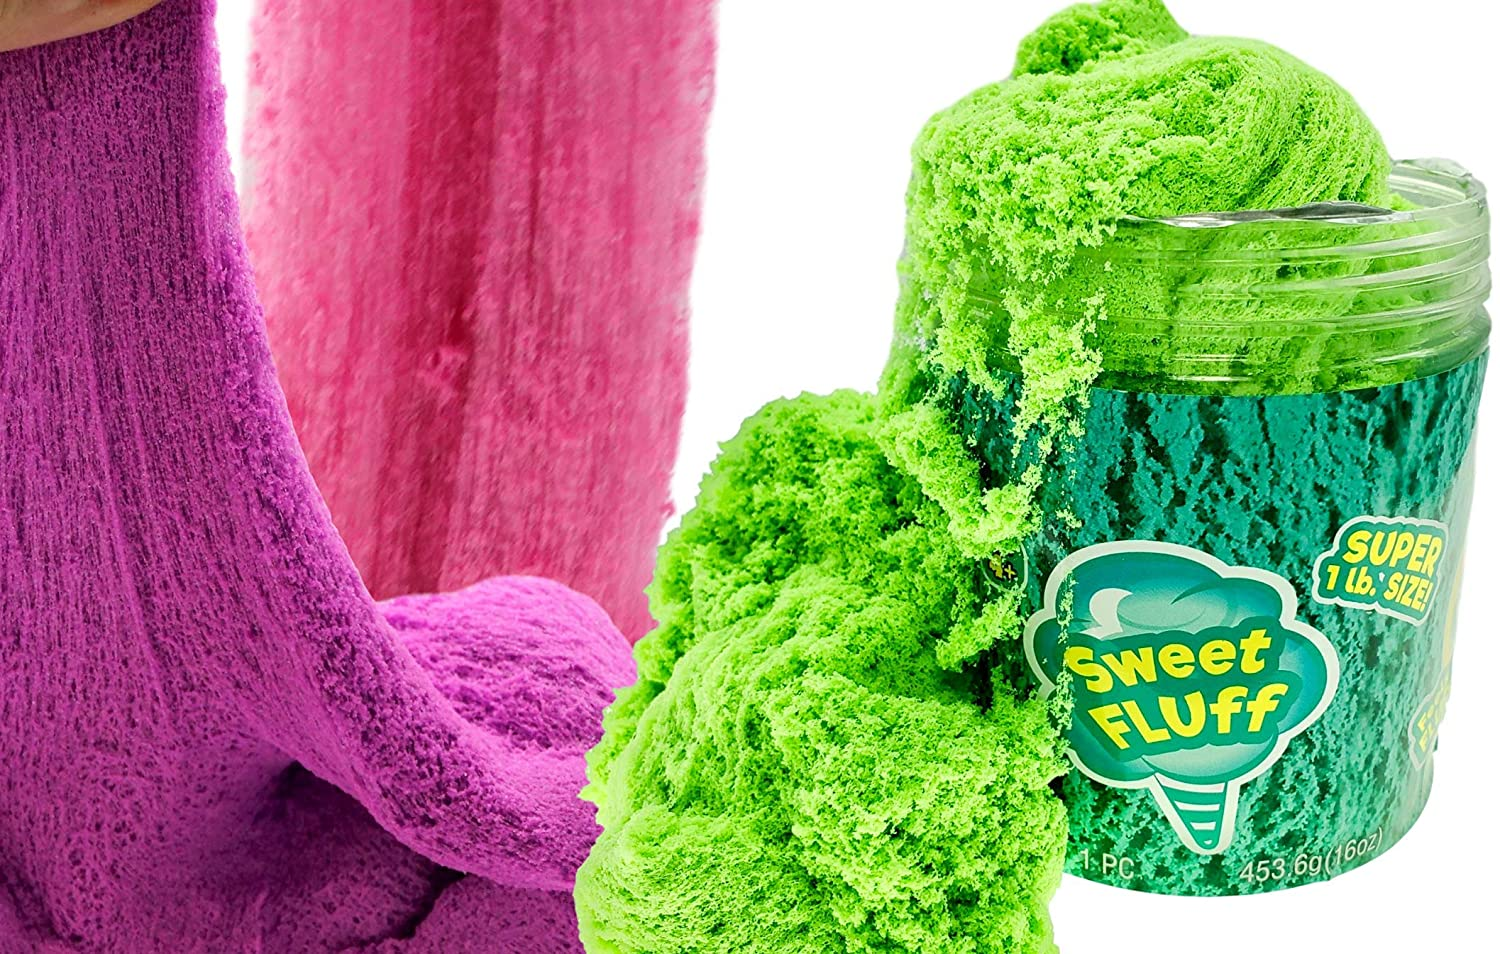 1 Pound Cotton Candy Putty Toys Sensory Sand Fluff Stuff Stress Relief Kids Toy (1 Unit) Cloud Slime & Kinetic Mad Play Therapy Putty Magic Mattr Clay Fidget Anxiety Relief Kids Party Favor. 6599-1A